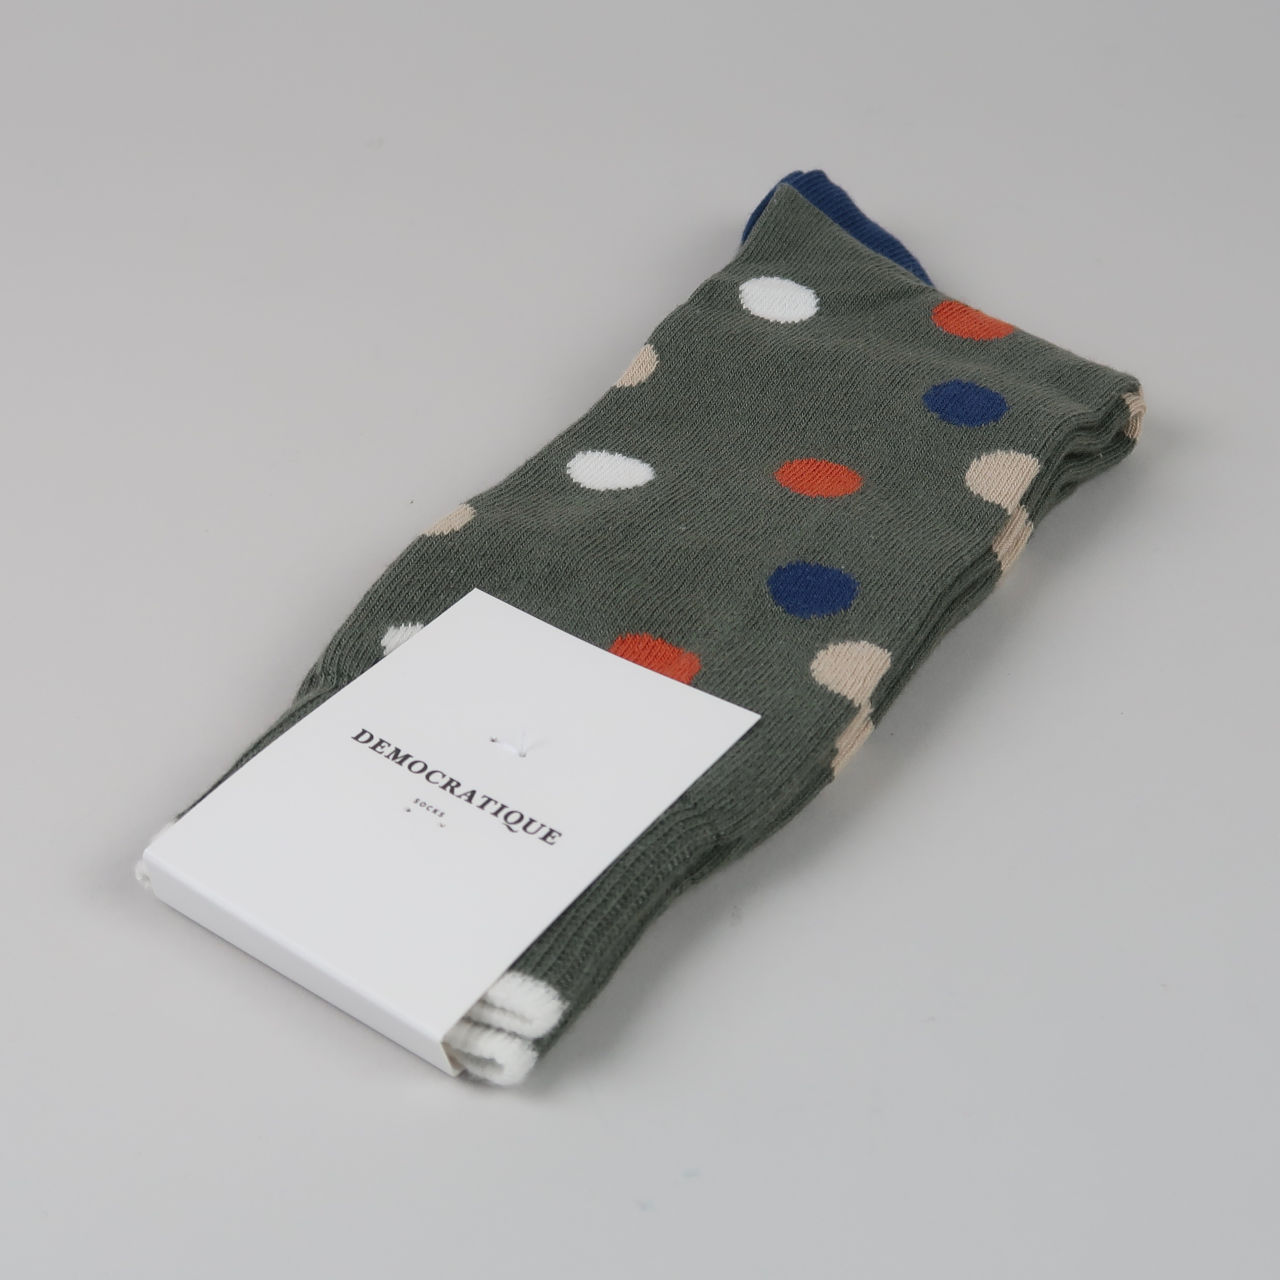 Men's Socks - Original Dots - Army/Dusty Orange/Dark Ocean Blue/Off White/Dark Sand